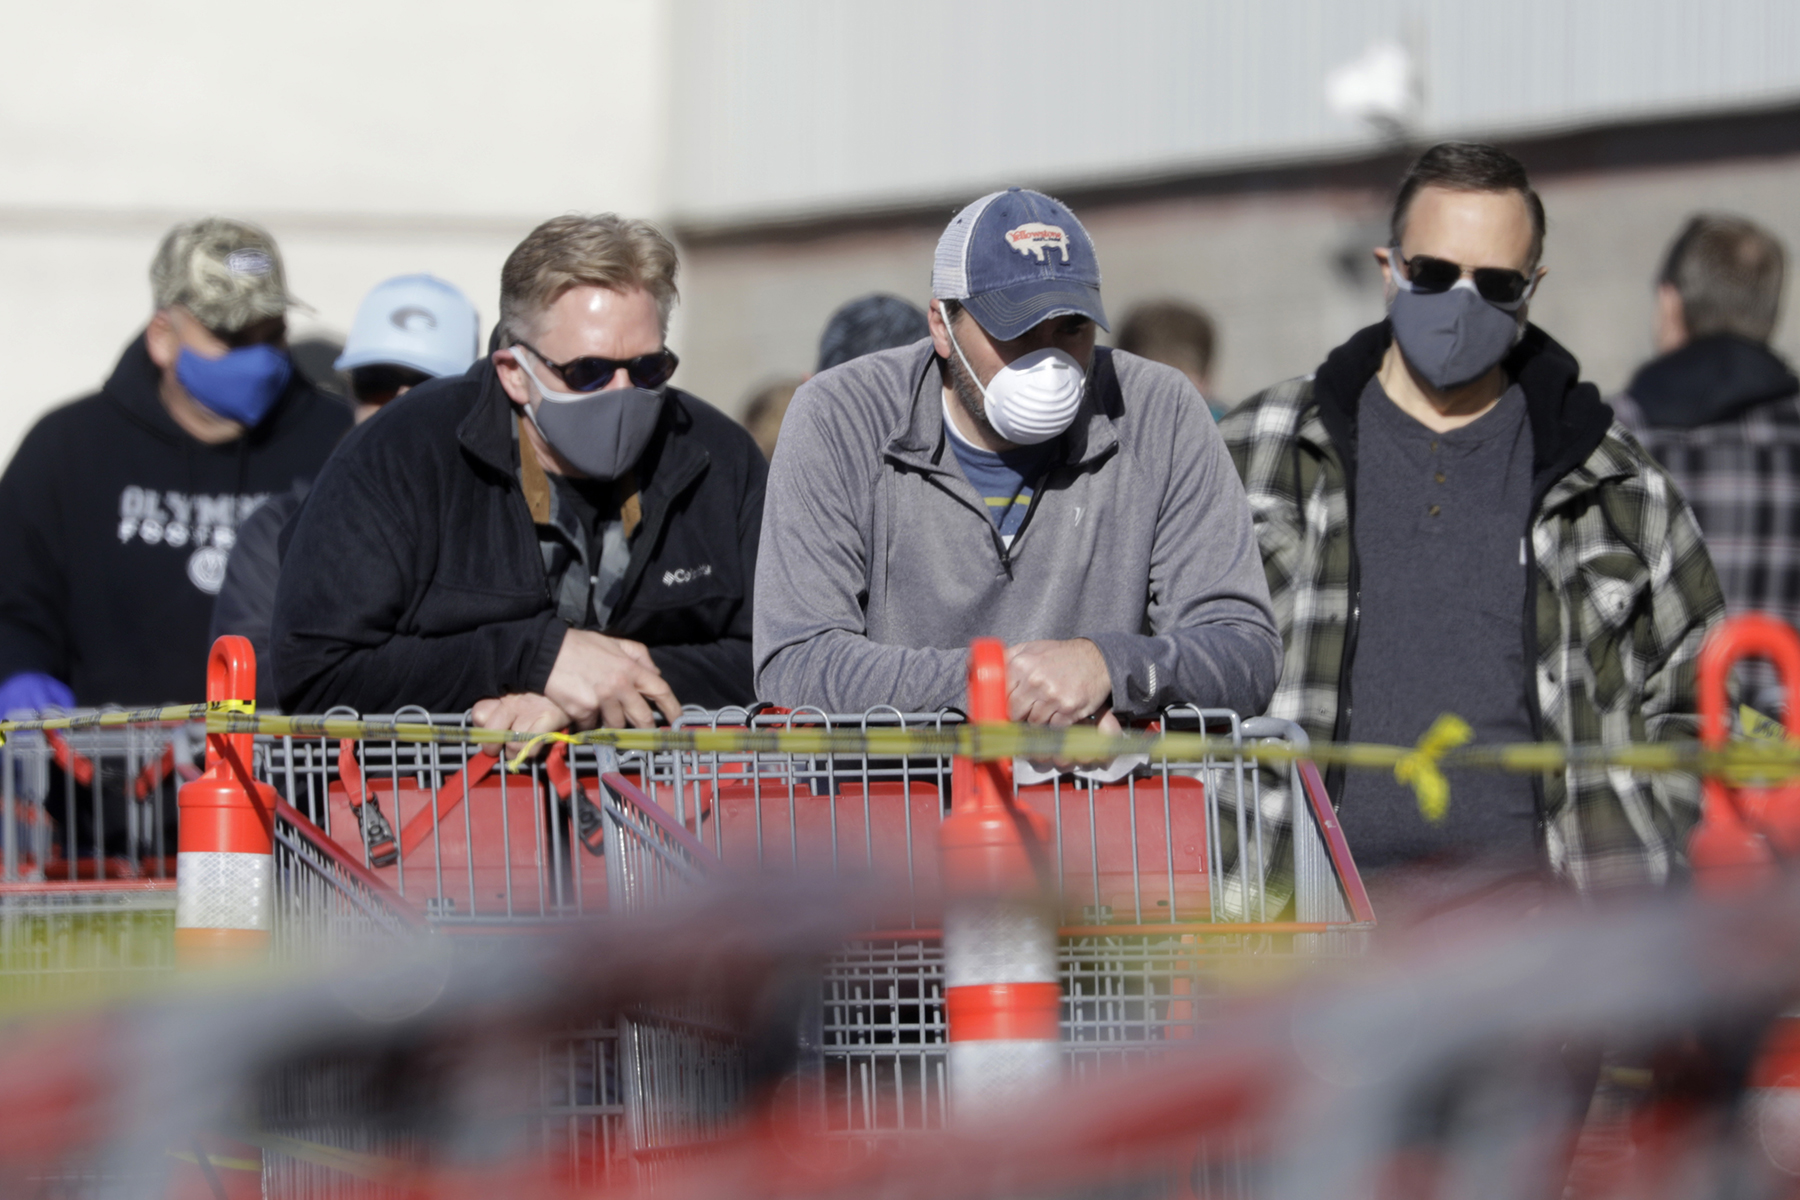 People wear masks as they wait in line at Costco, in Salt Lake City. The Centers for Disease Control and Prevention is now advising Americans to voluntarily wear a basic cloth or fabric face mask to help curb the spread of the new coronavirusVirus Outbreak Utah, Salt Lake City, United States - 04 Apr 2020